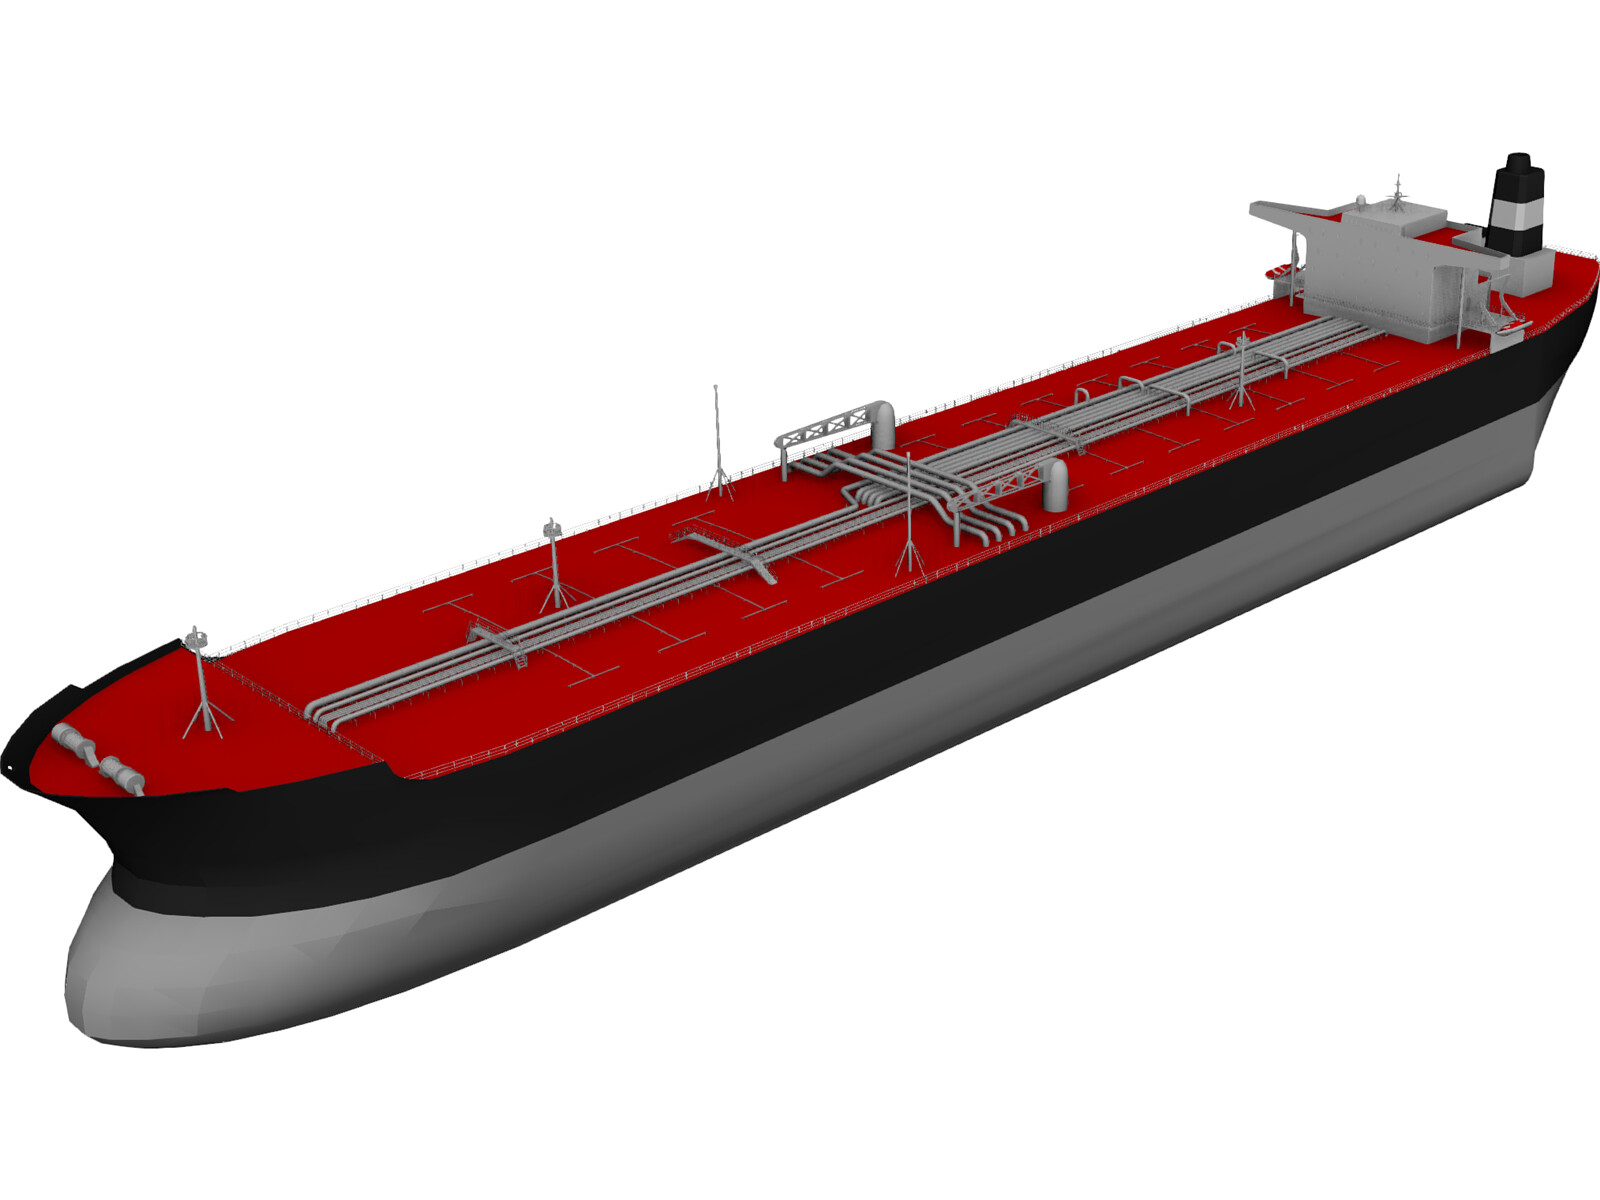 Stock Images Oil Tank Truck White Background D Render Image34769924 also Stock Illustration Cartoon Tanker Truck Back D White View Image48541633 furthermore Dyeing Chow Chows To Look Like Pandas likewise Semi Truck as well Oil Tanker Moored Offshore. on oil tanker cartoon